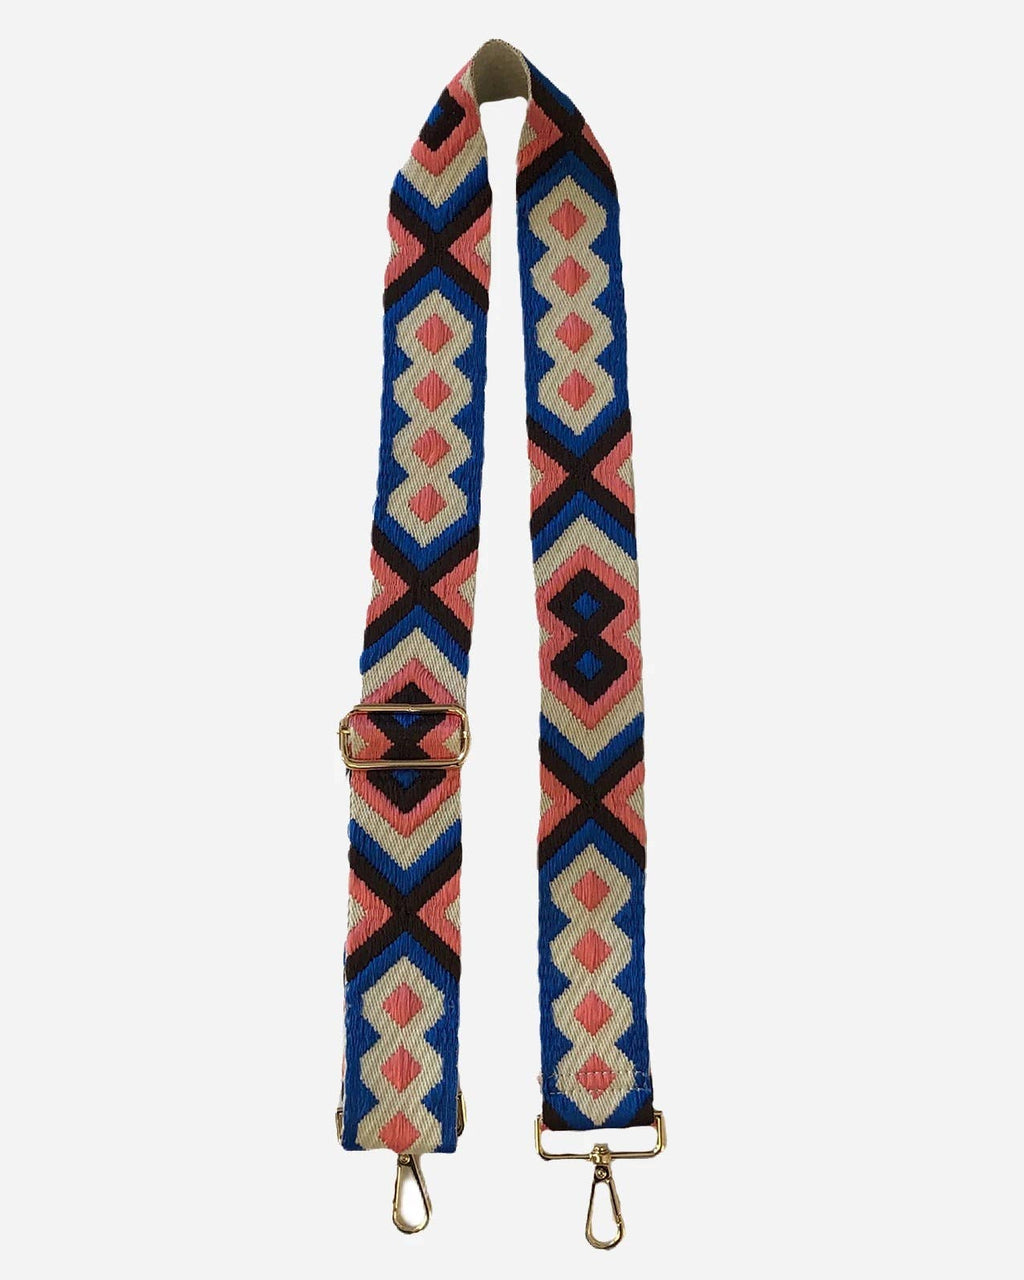 Aztec Strap - Blue and Pink